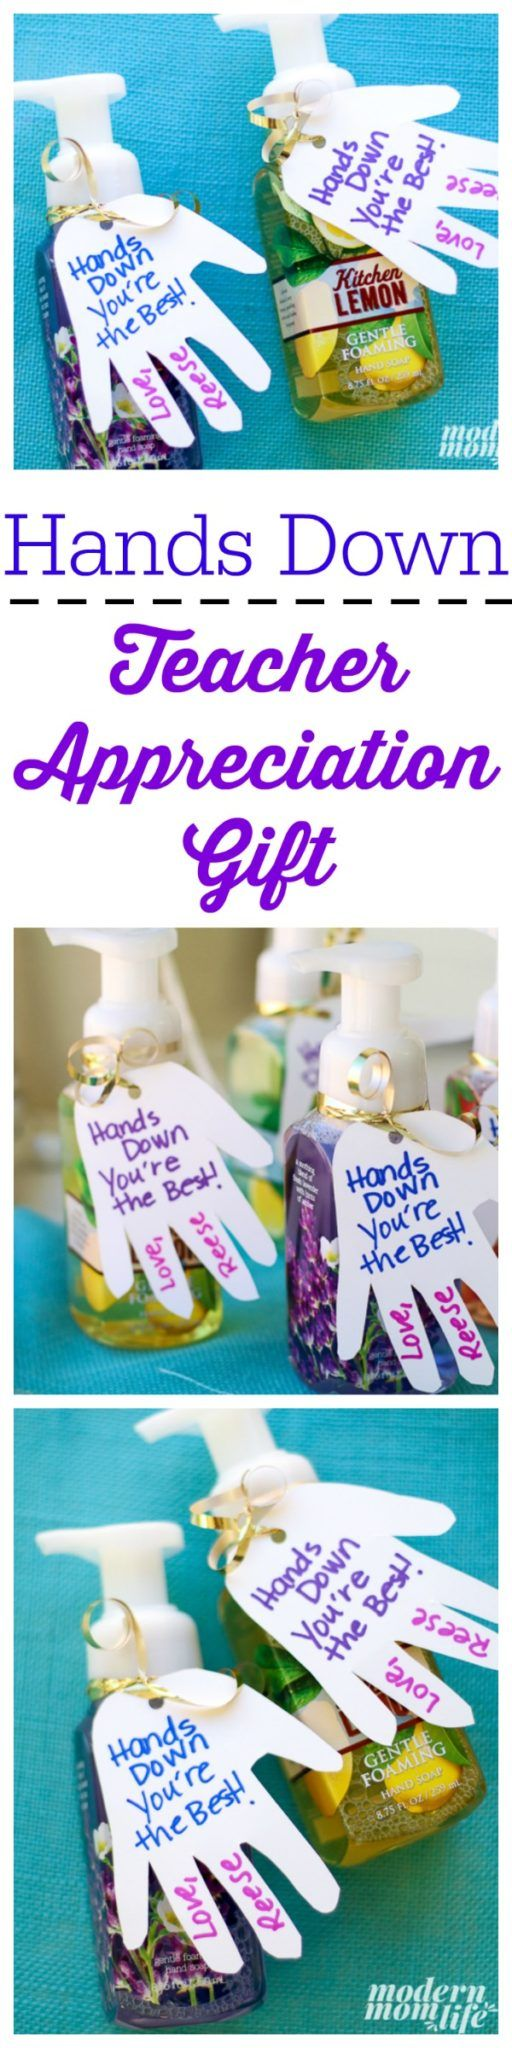 This Hands Down Teacher Appreciation Gift is simple and easy to make. Makes the perfect homemade teacher gift!  via @amodernmomlife